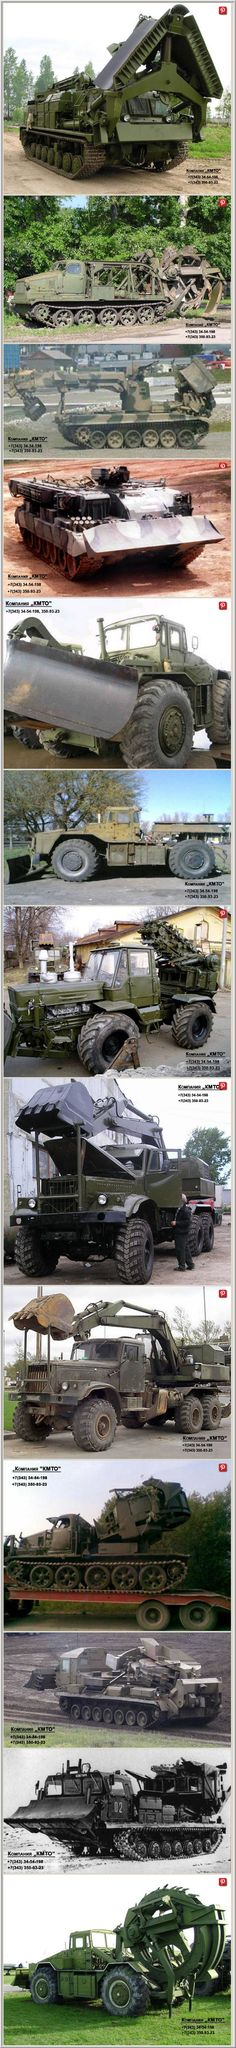 Russian Military Hardware